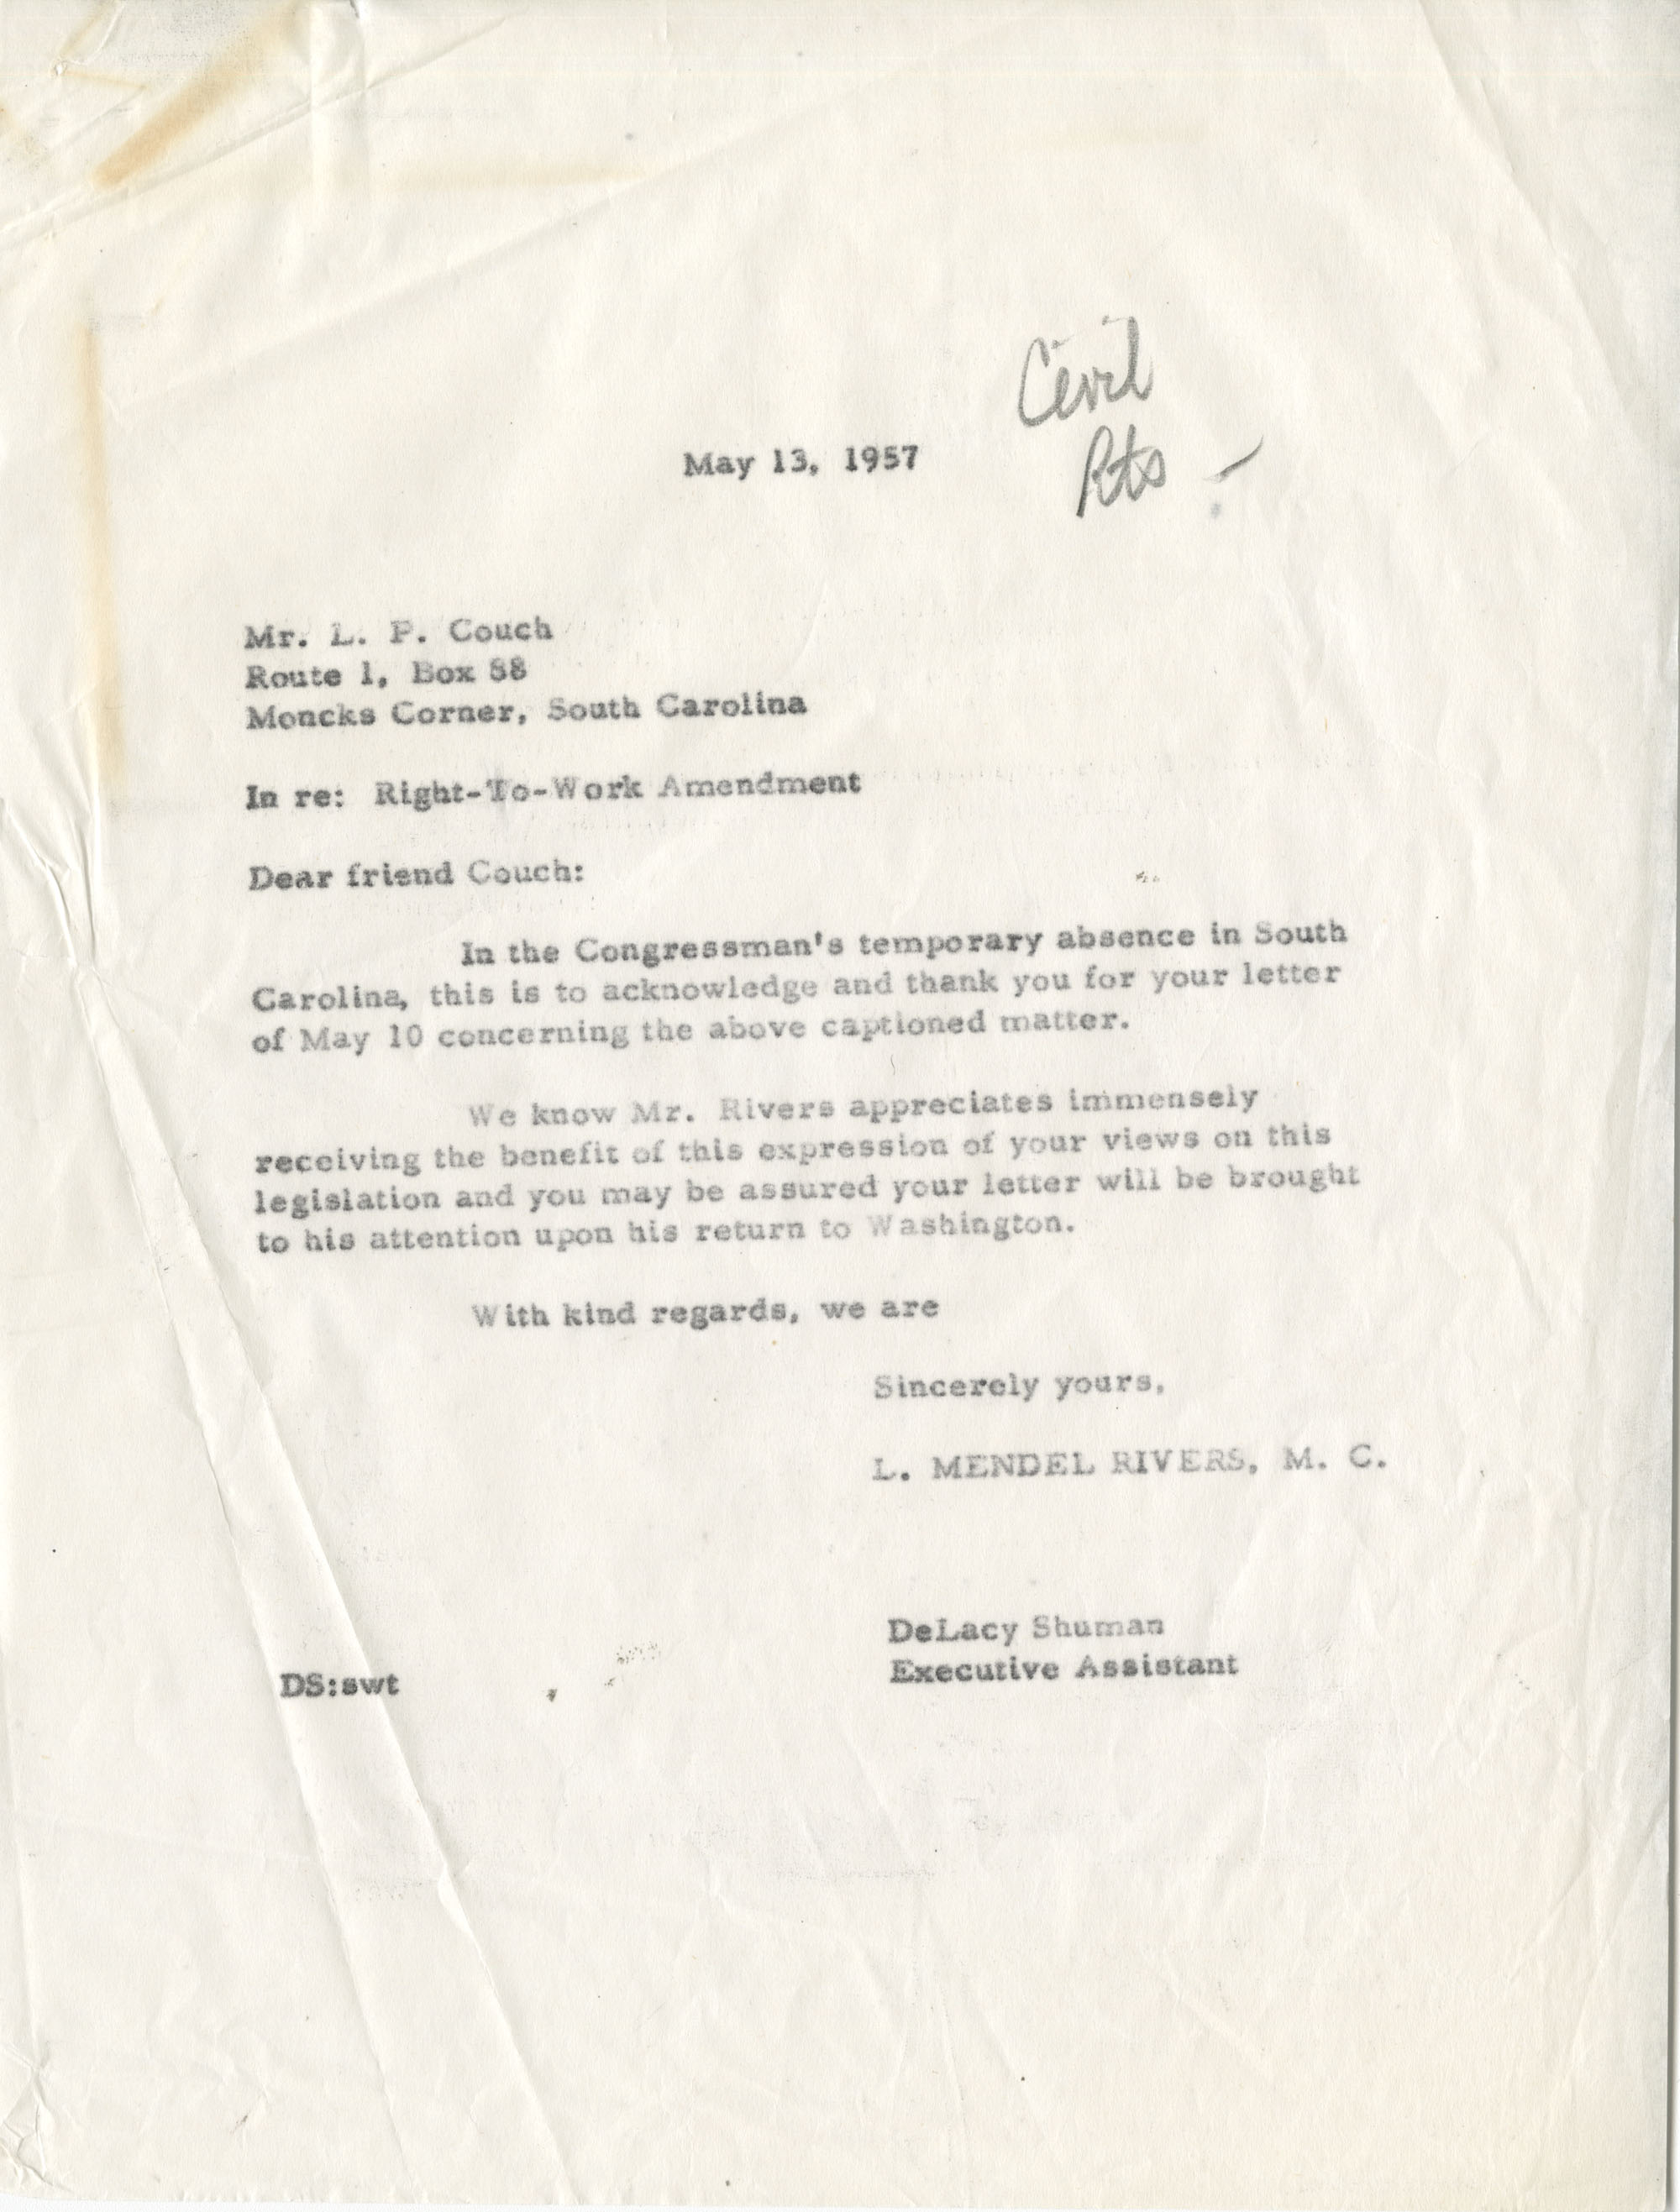 Letter from L. P. Couch to Representative L. Mendel Rivers, May 13, 1957